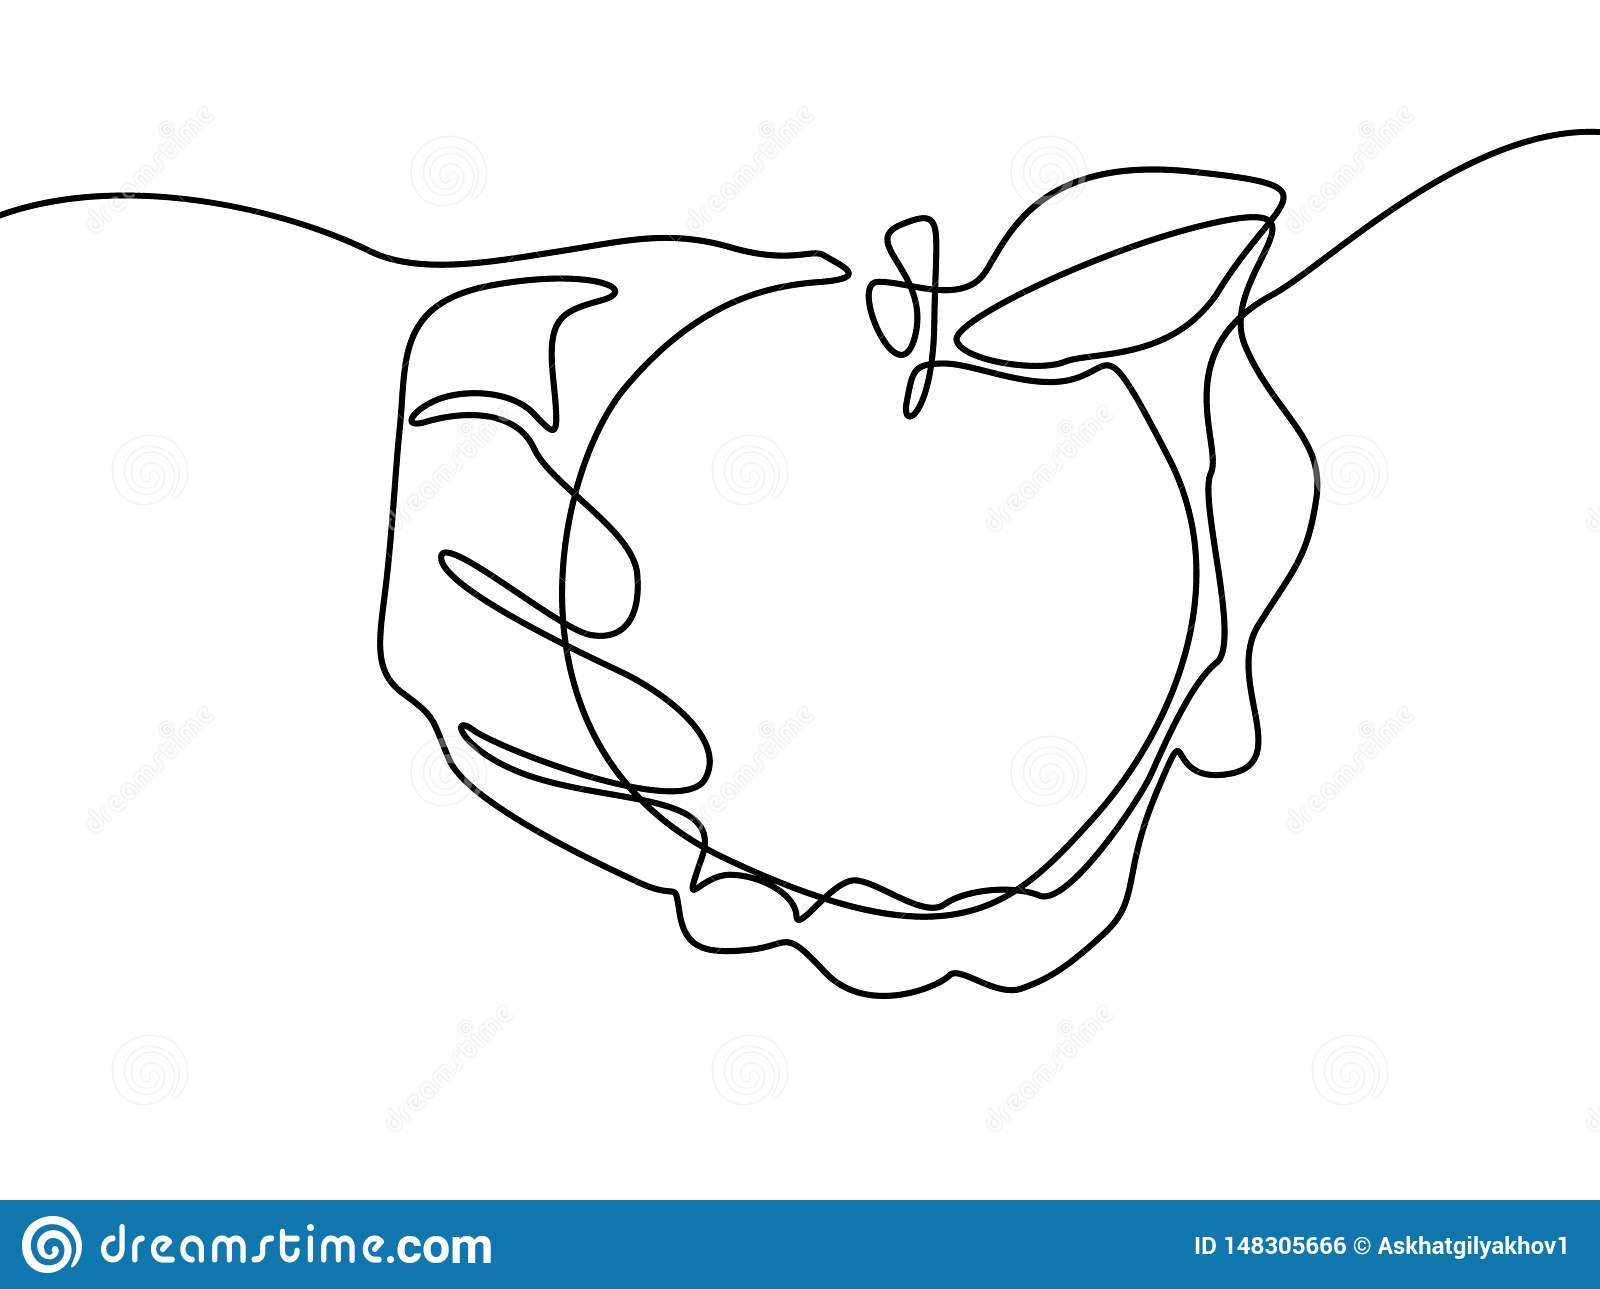 Continuous Line Drawing Apple In Hand Vector Illustration Stock Vector Illustration Of Closeup Fruit 148305666